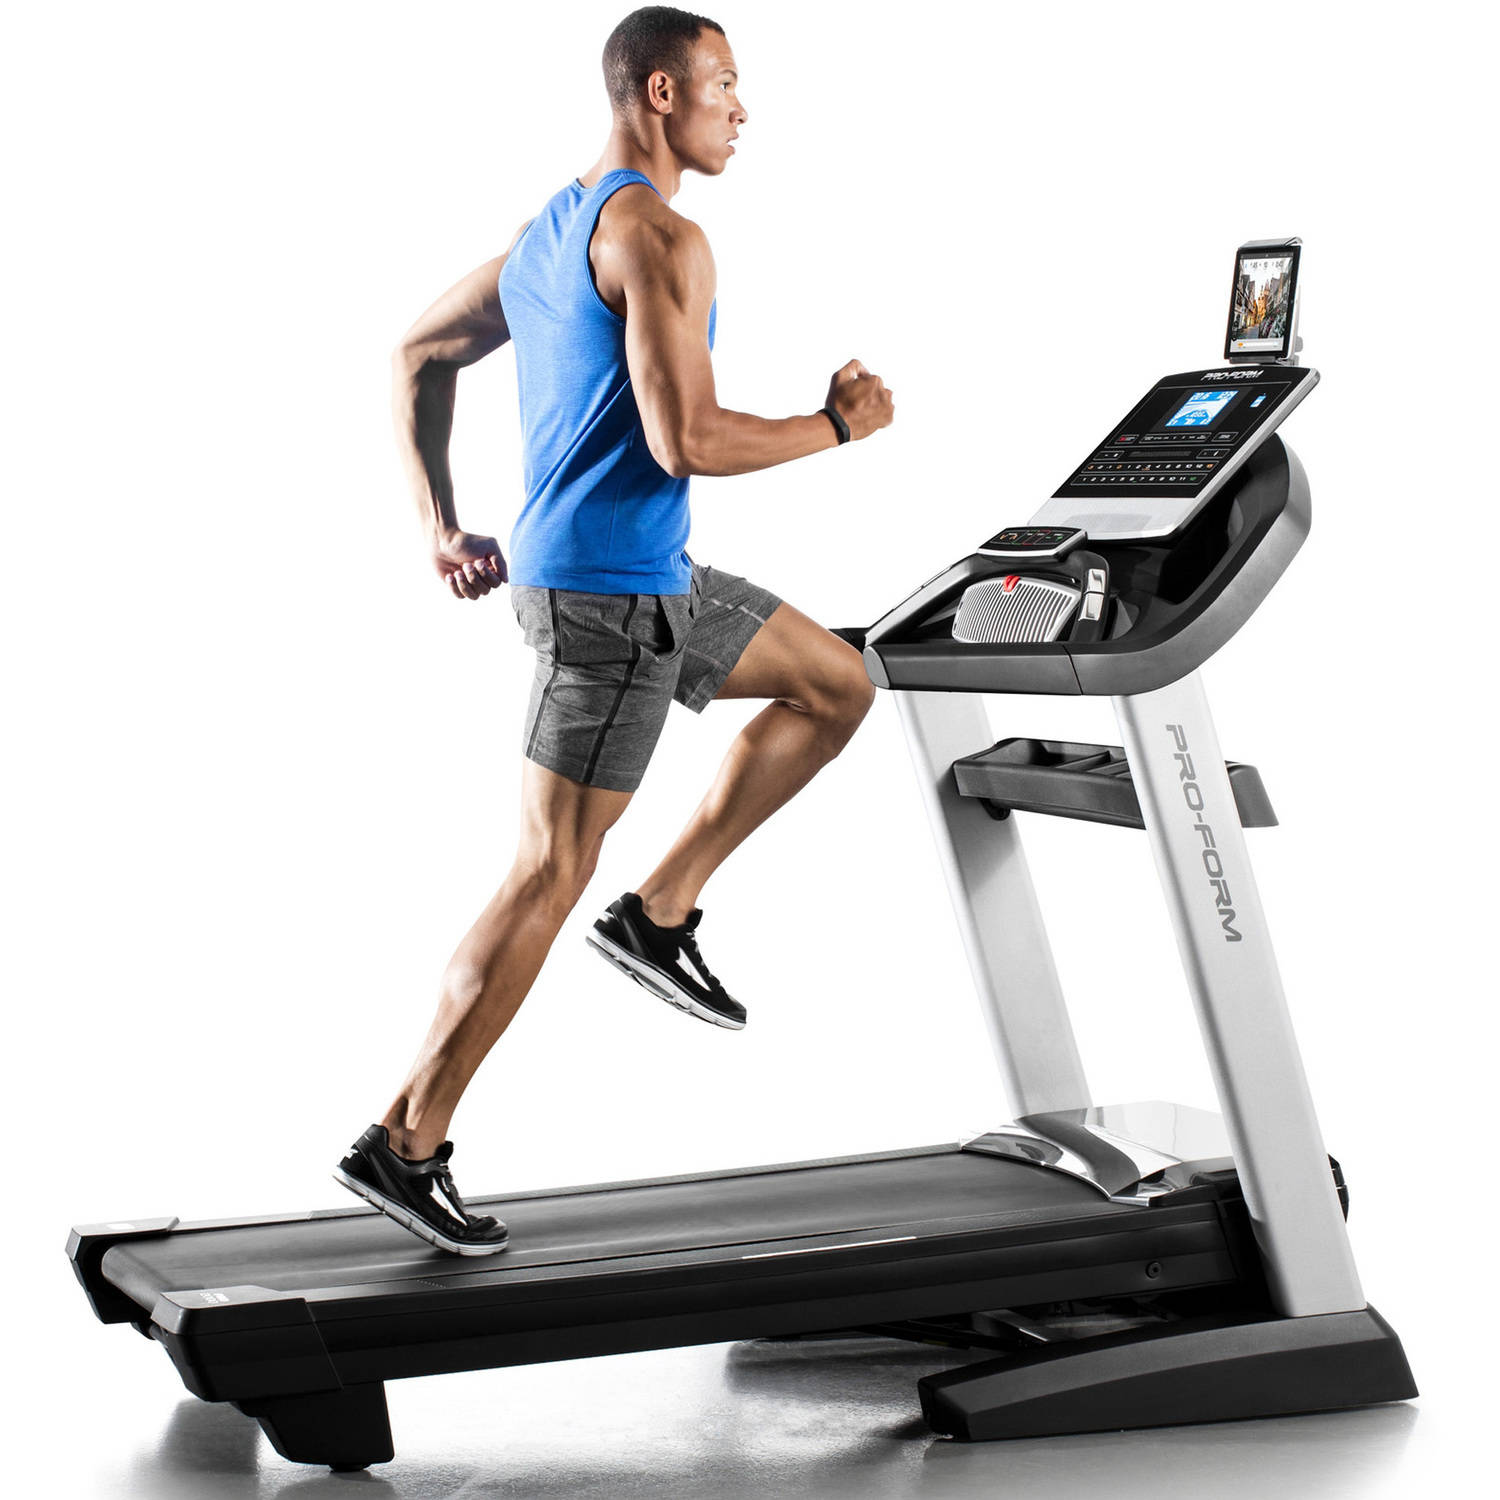 ProForm Pro 2000 Treadmill by Icon Health & Fitness Inc.